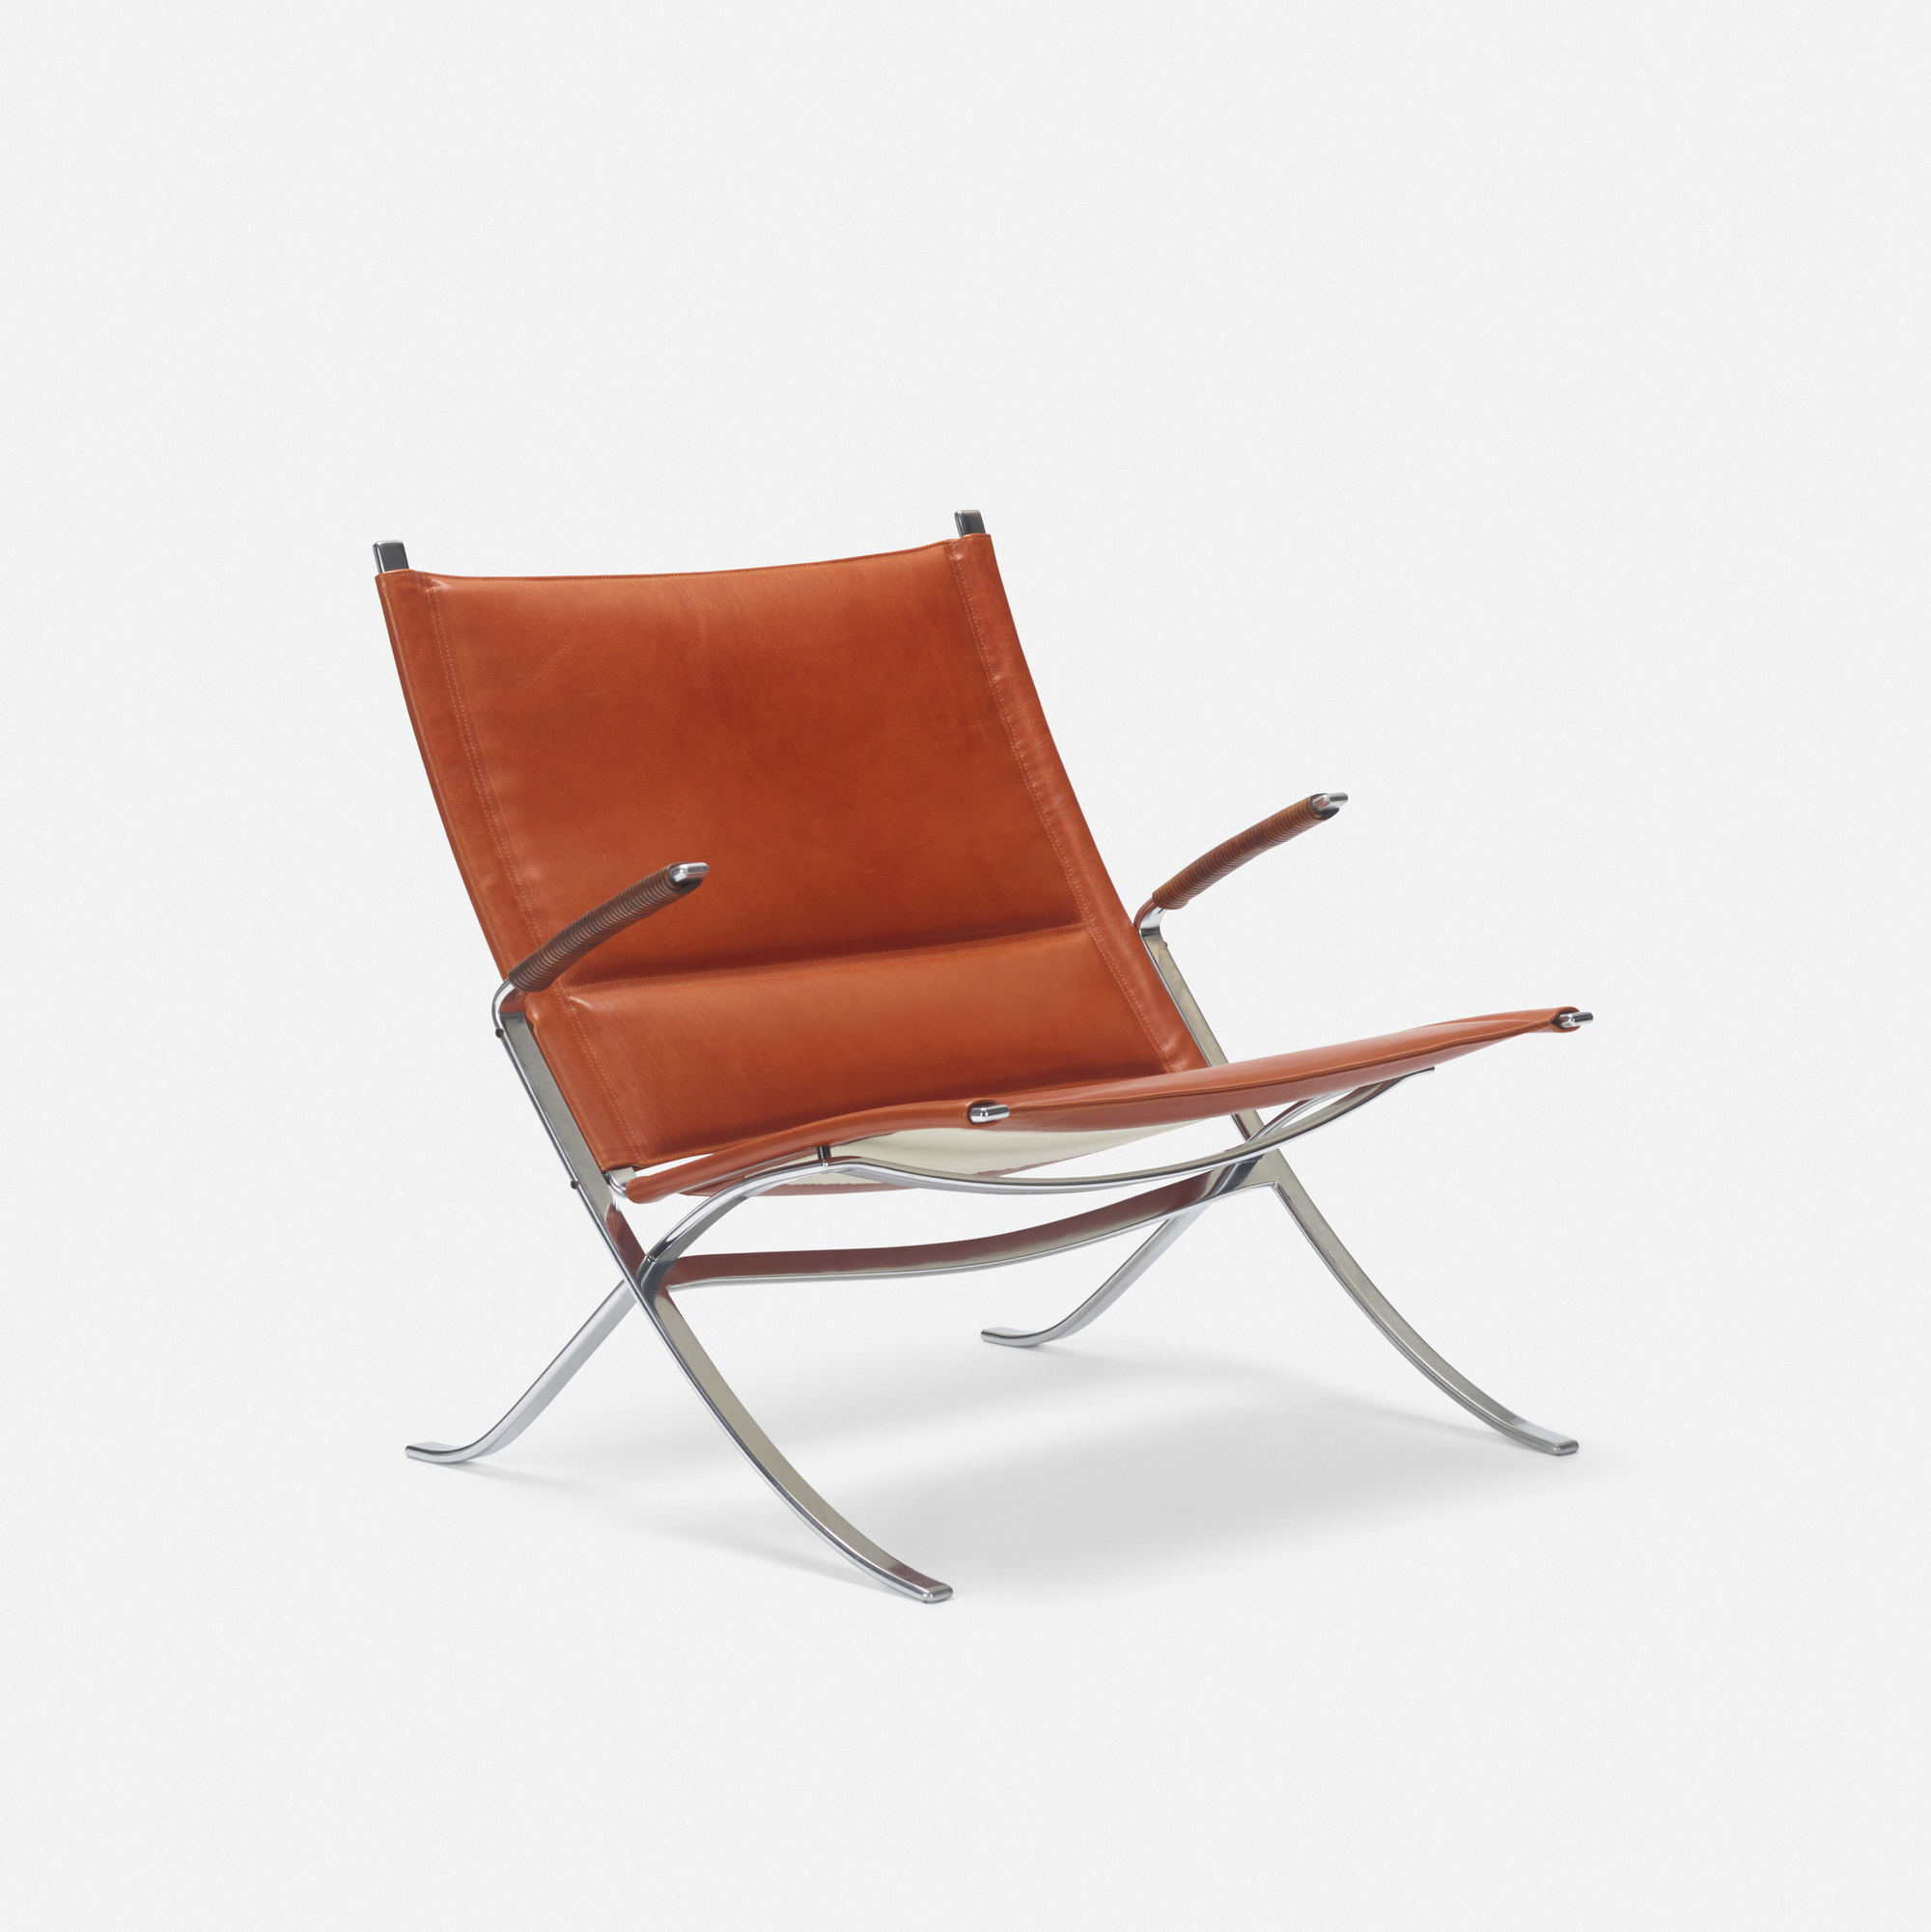 351: Preben Fabricius and Jorgen Kastholm / lounge chair, model FK 82 (1 of 3)